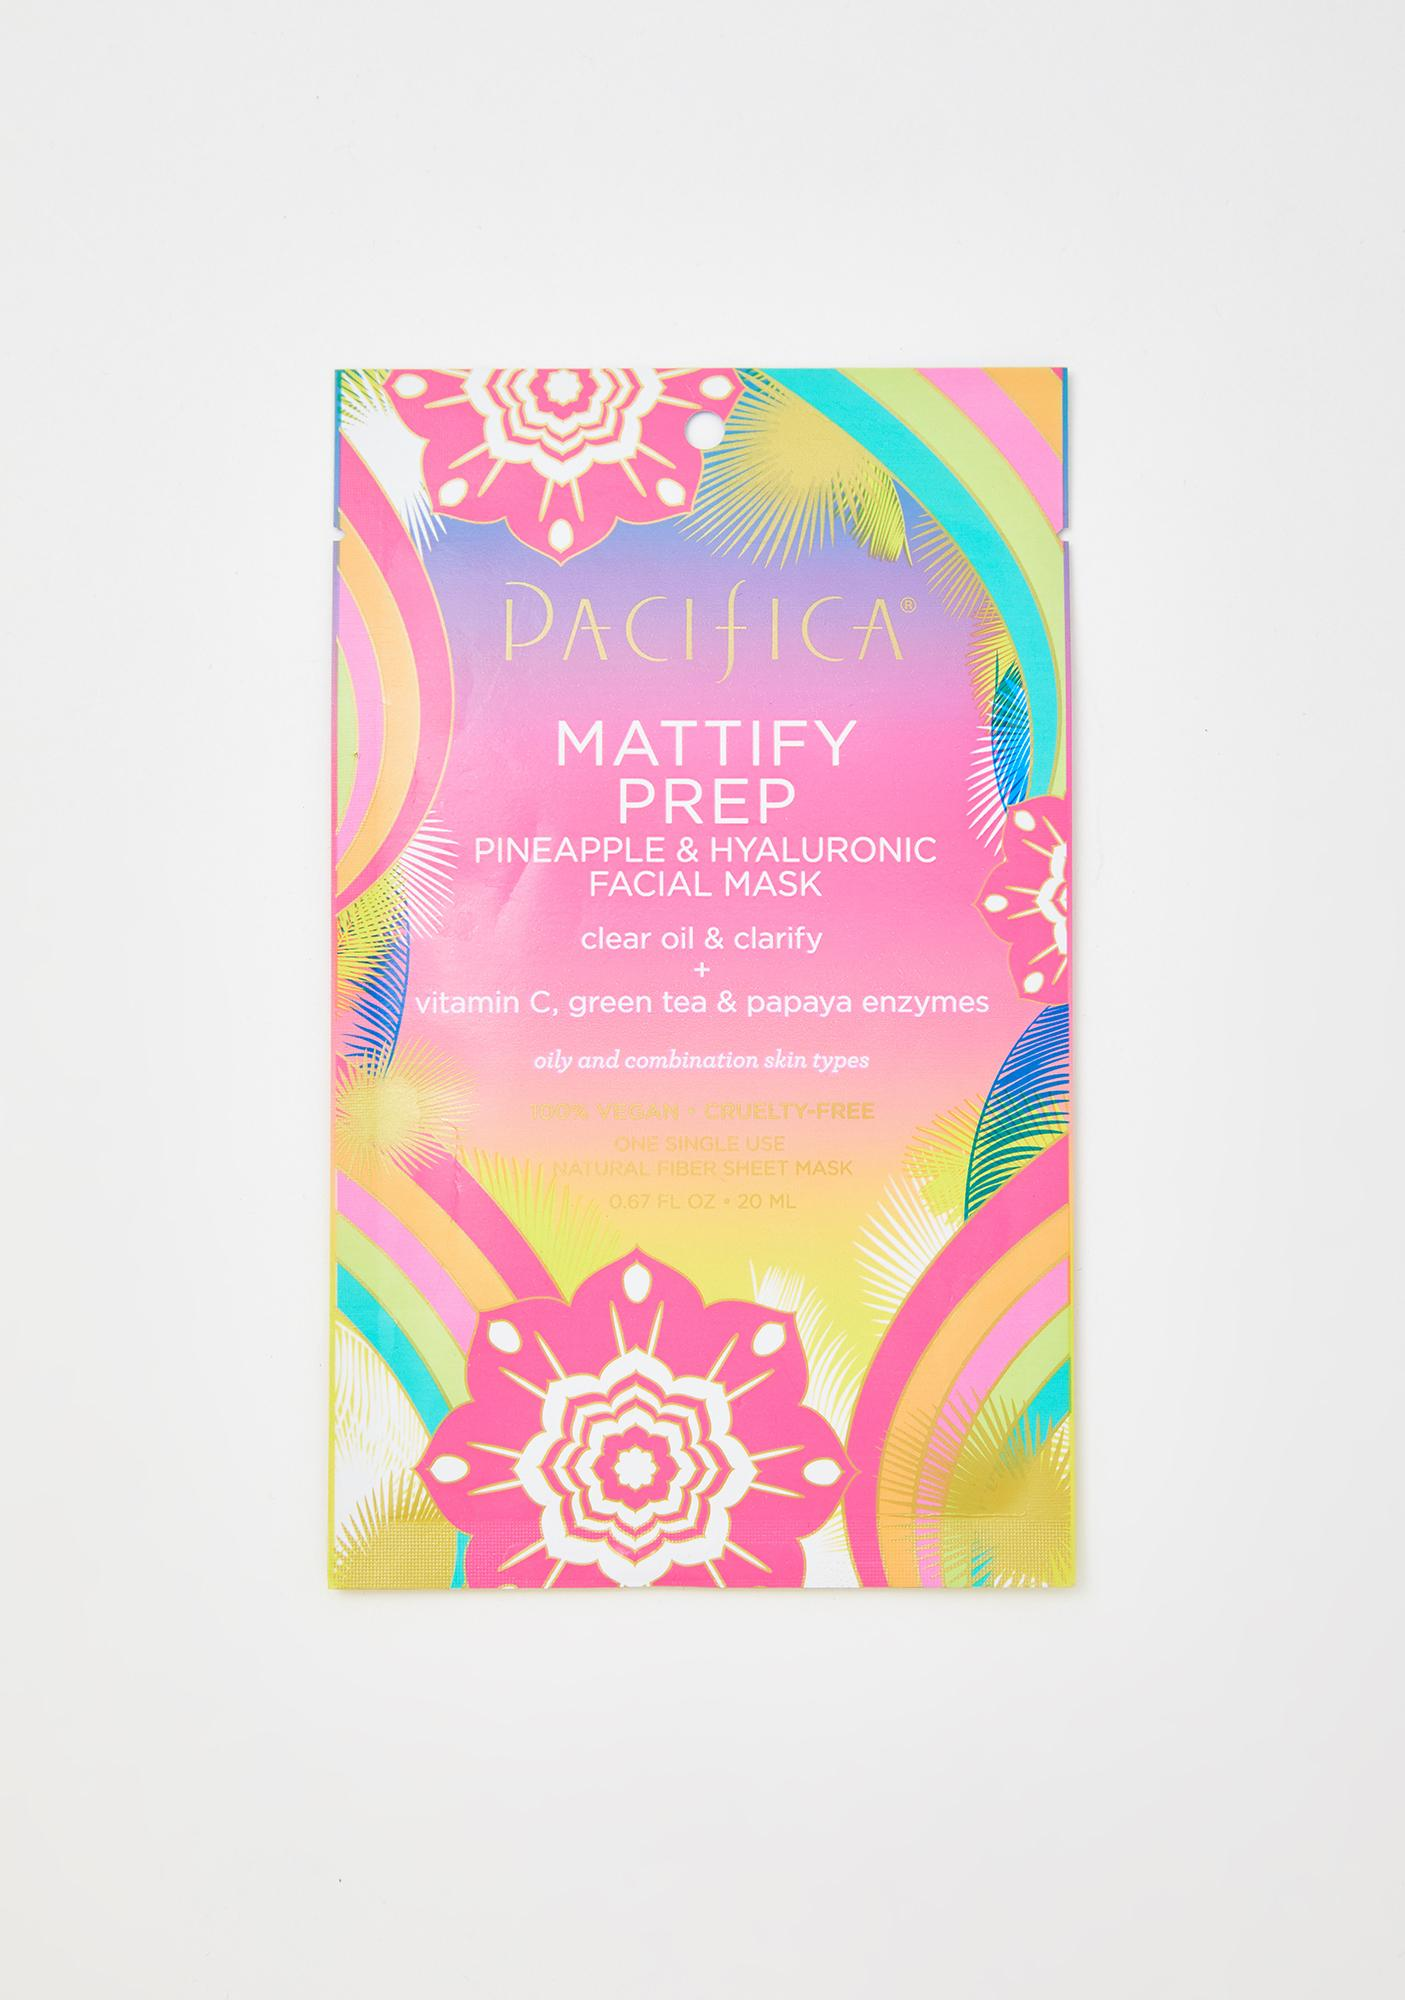 Pacifica Mattify Prep Pineapple N Hyaluronic Face Mask